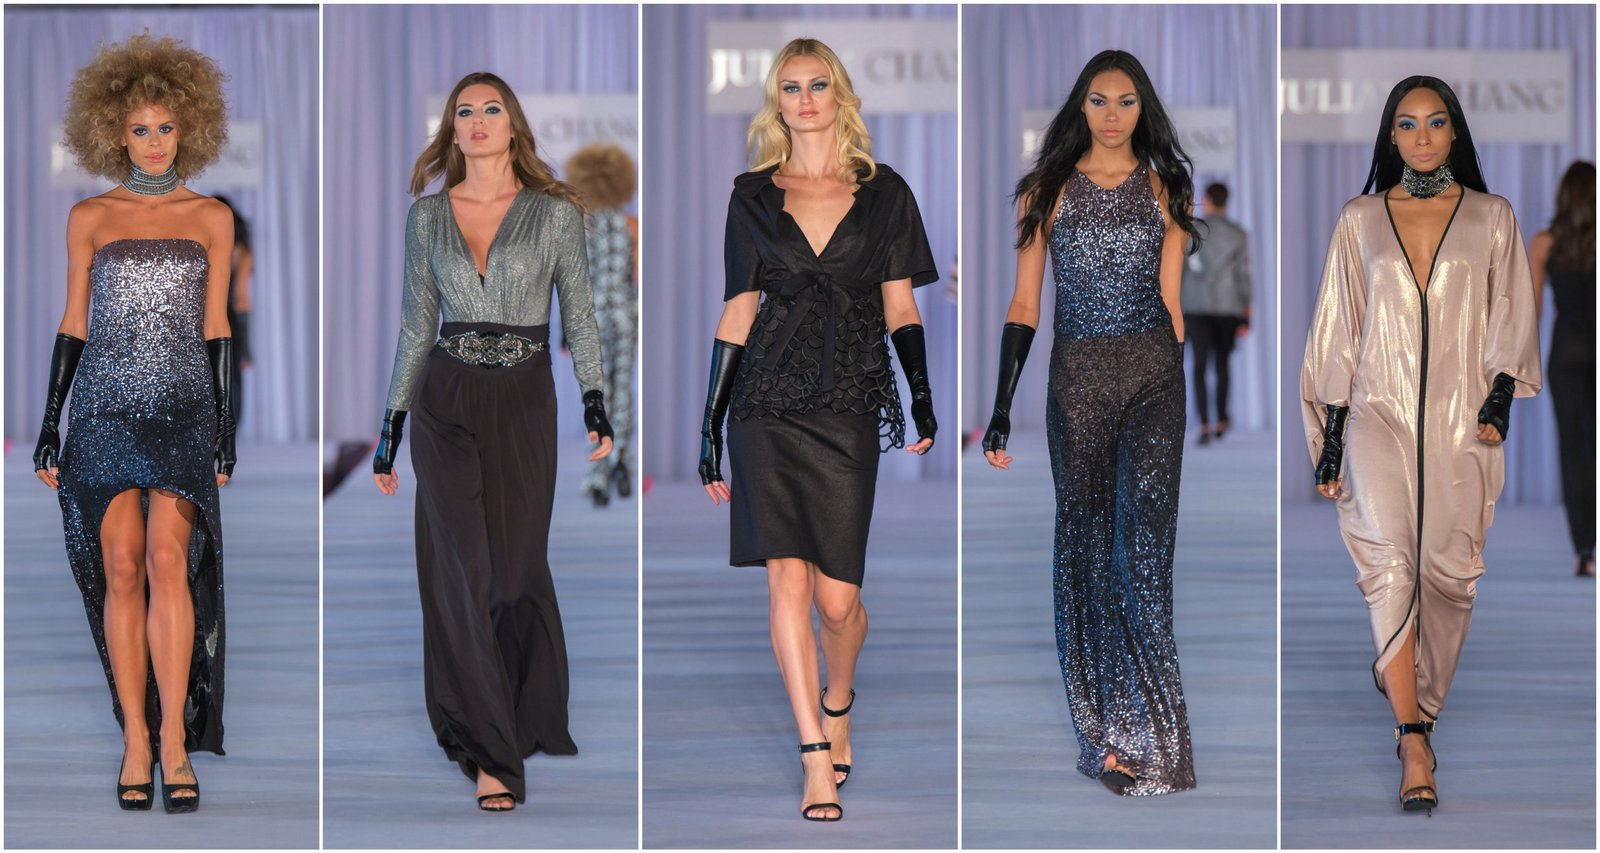 Julian Chang Releases Fashion Show Collection for Immediate Availability